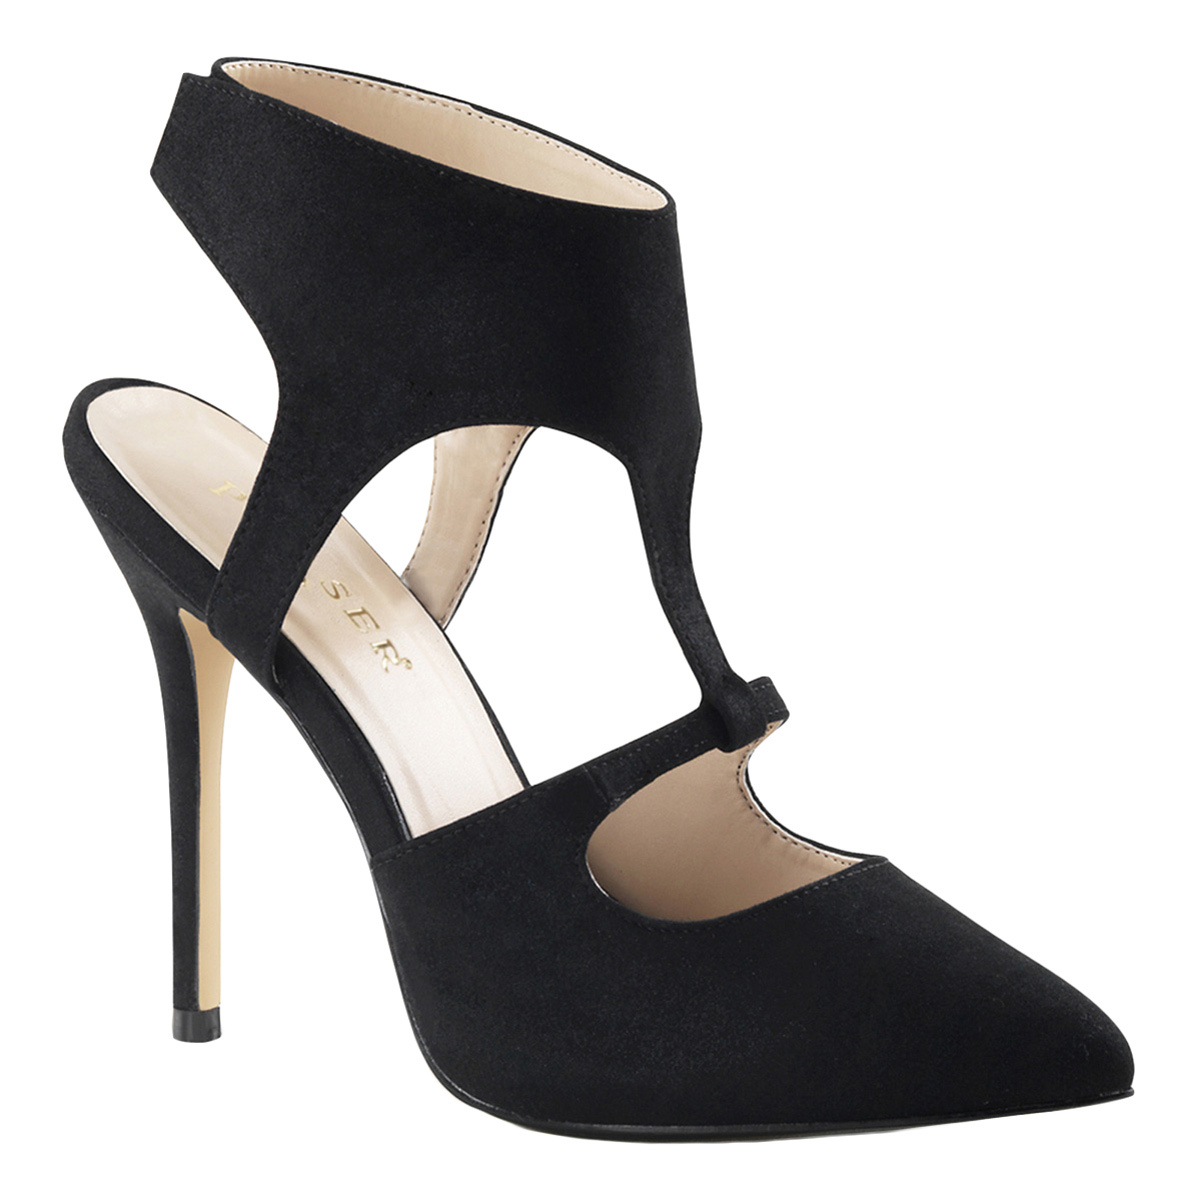 Womens Black Microfiber Sexy Shoes with 5 Inch Slim Heels and Ankle Cuff